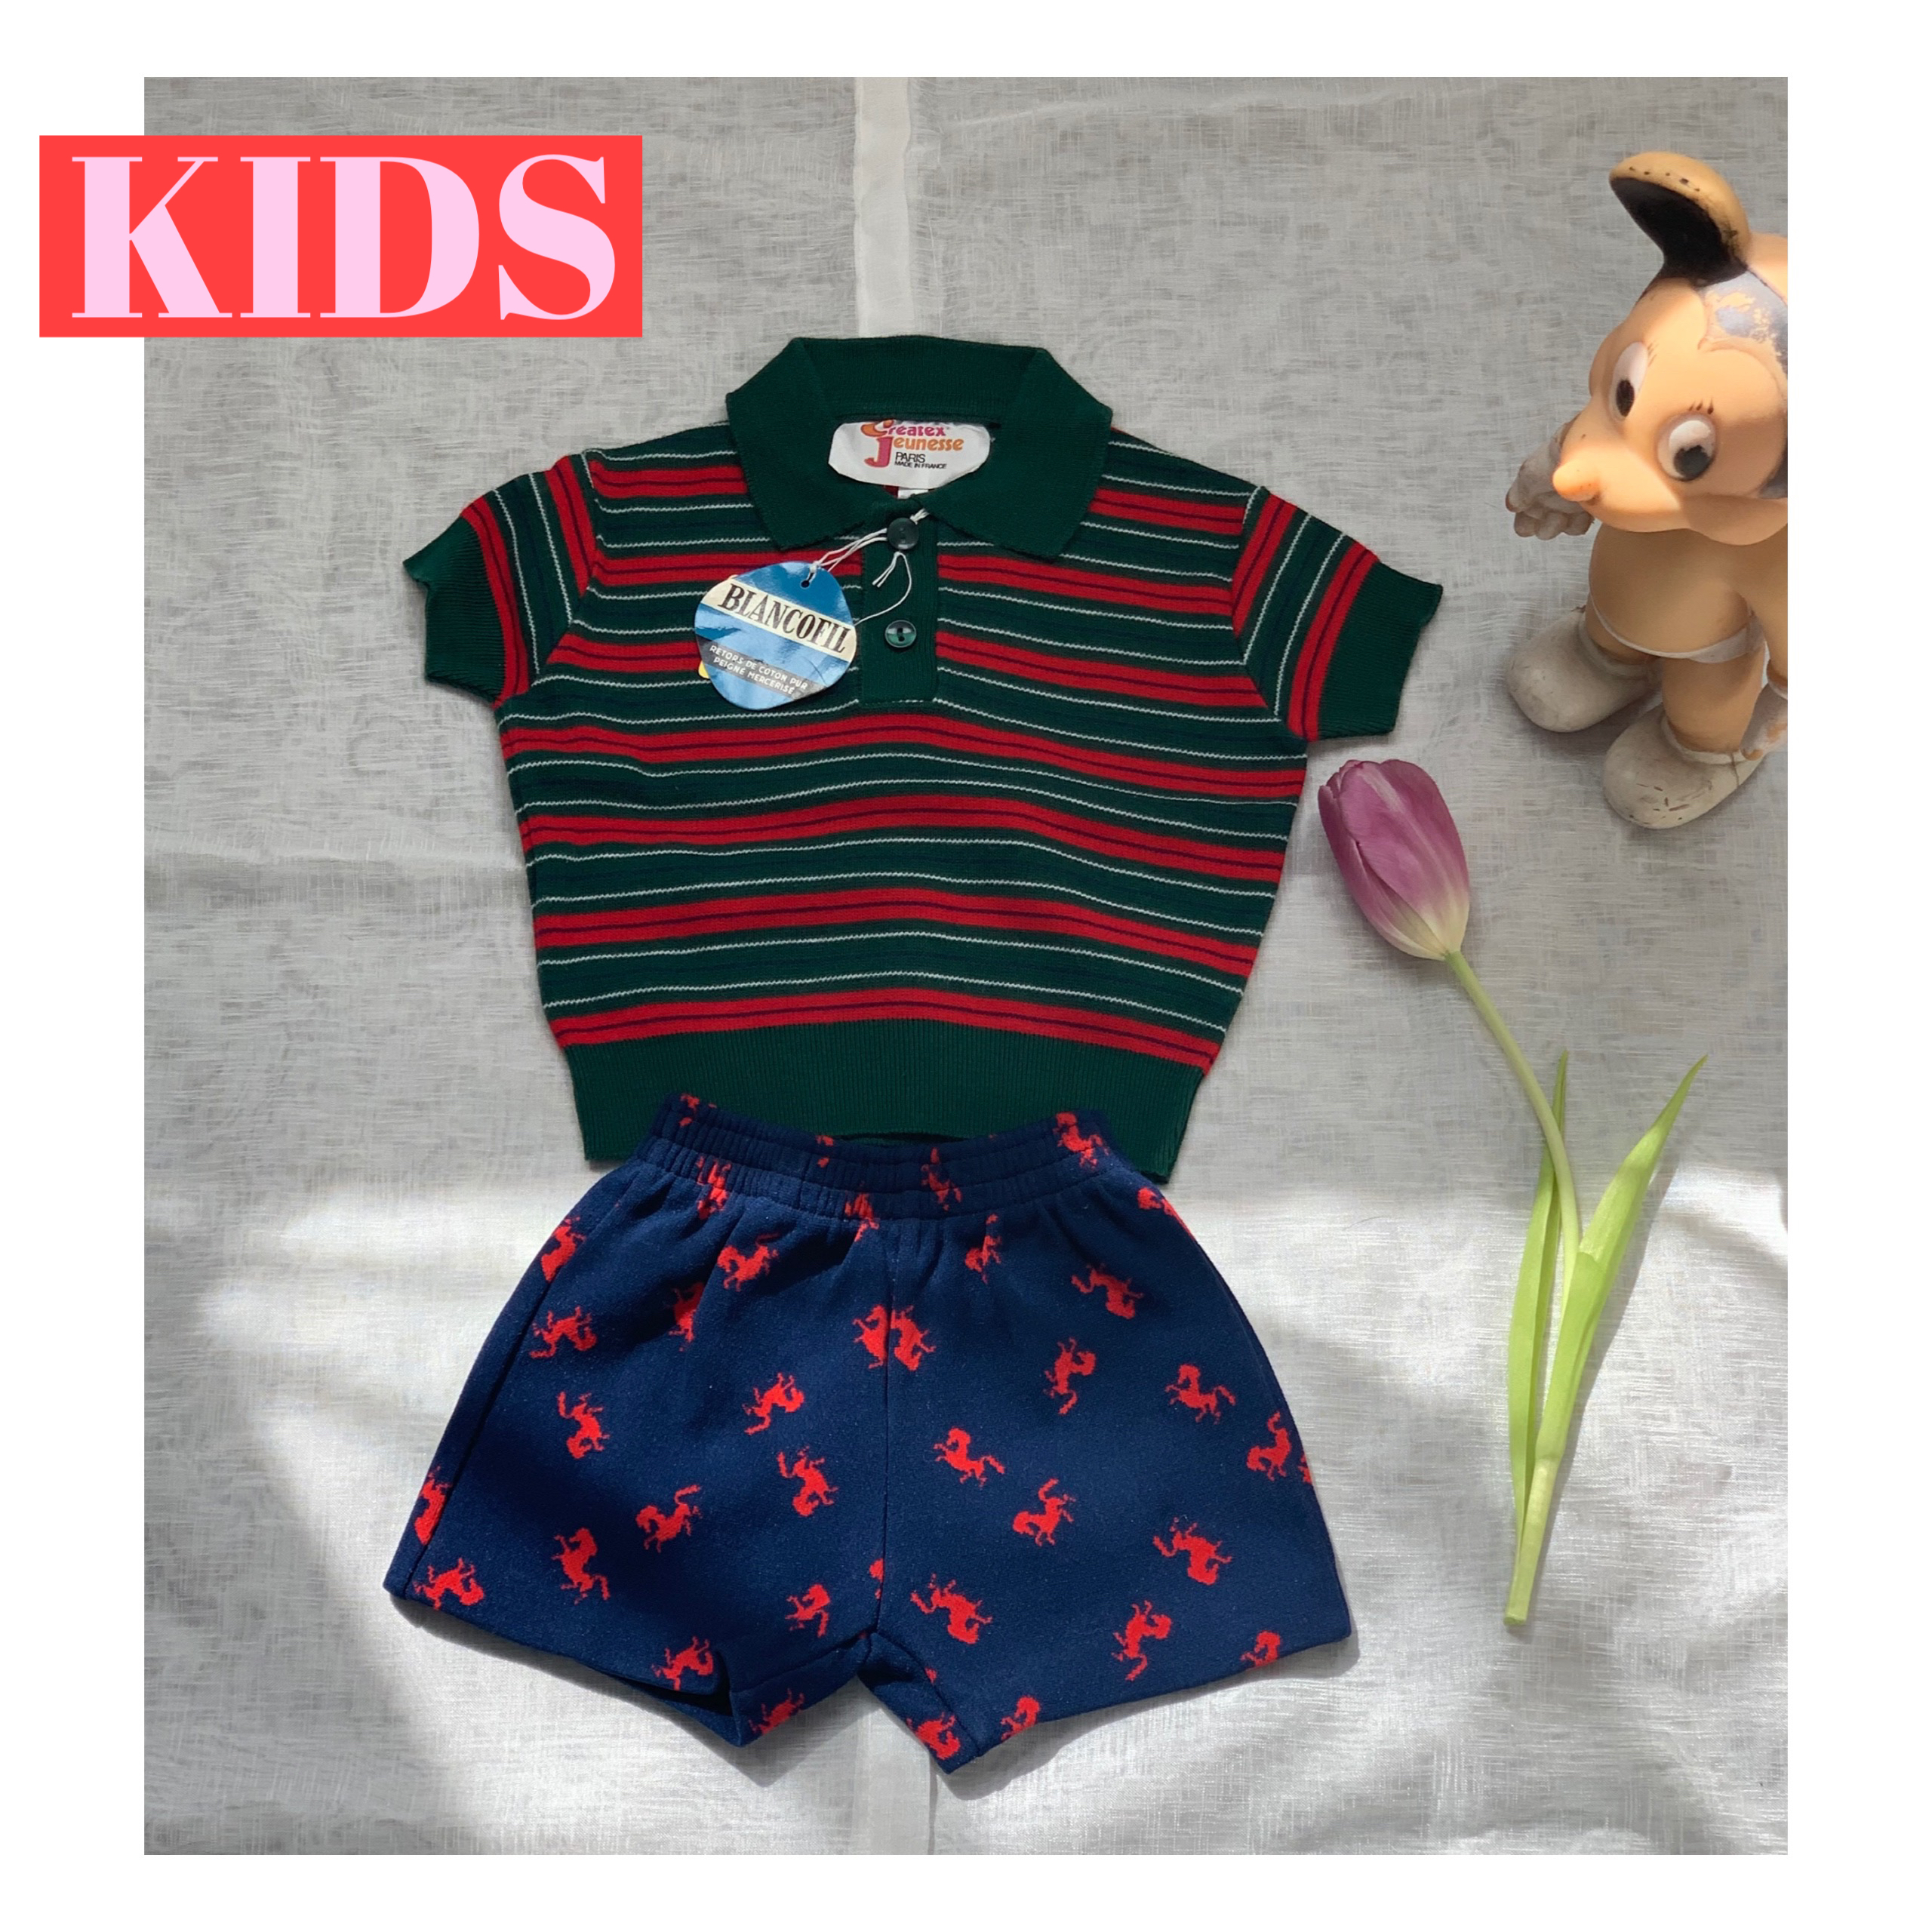 【KIDS】70's 〈Createx Jeunesse〉Striped Cotton Polo Top - French - Size 9 months old-